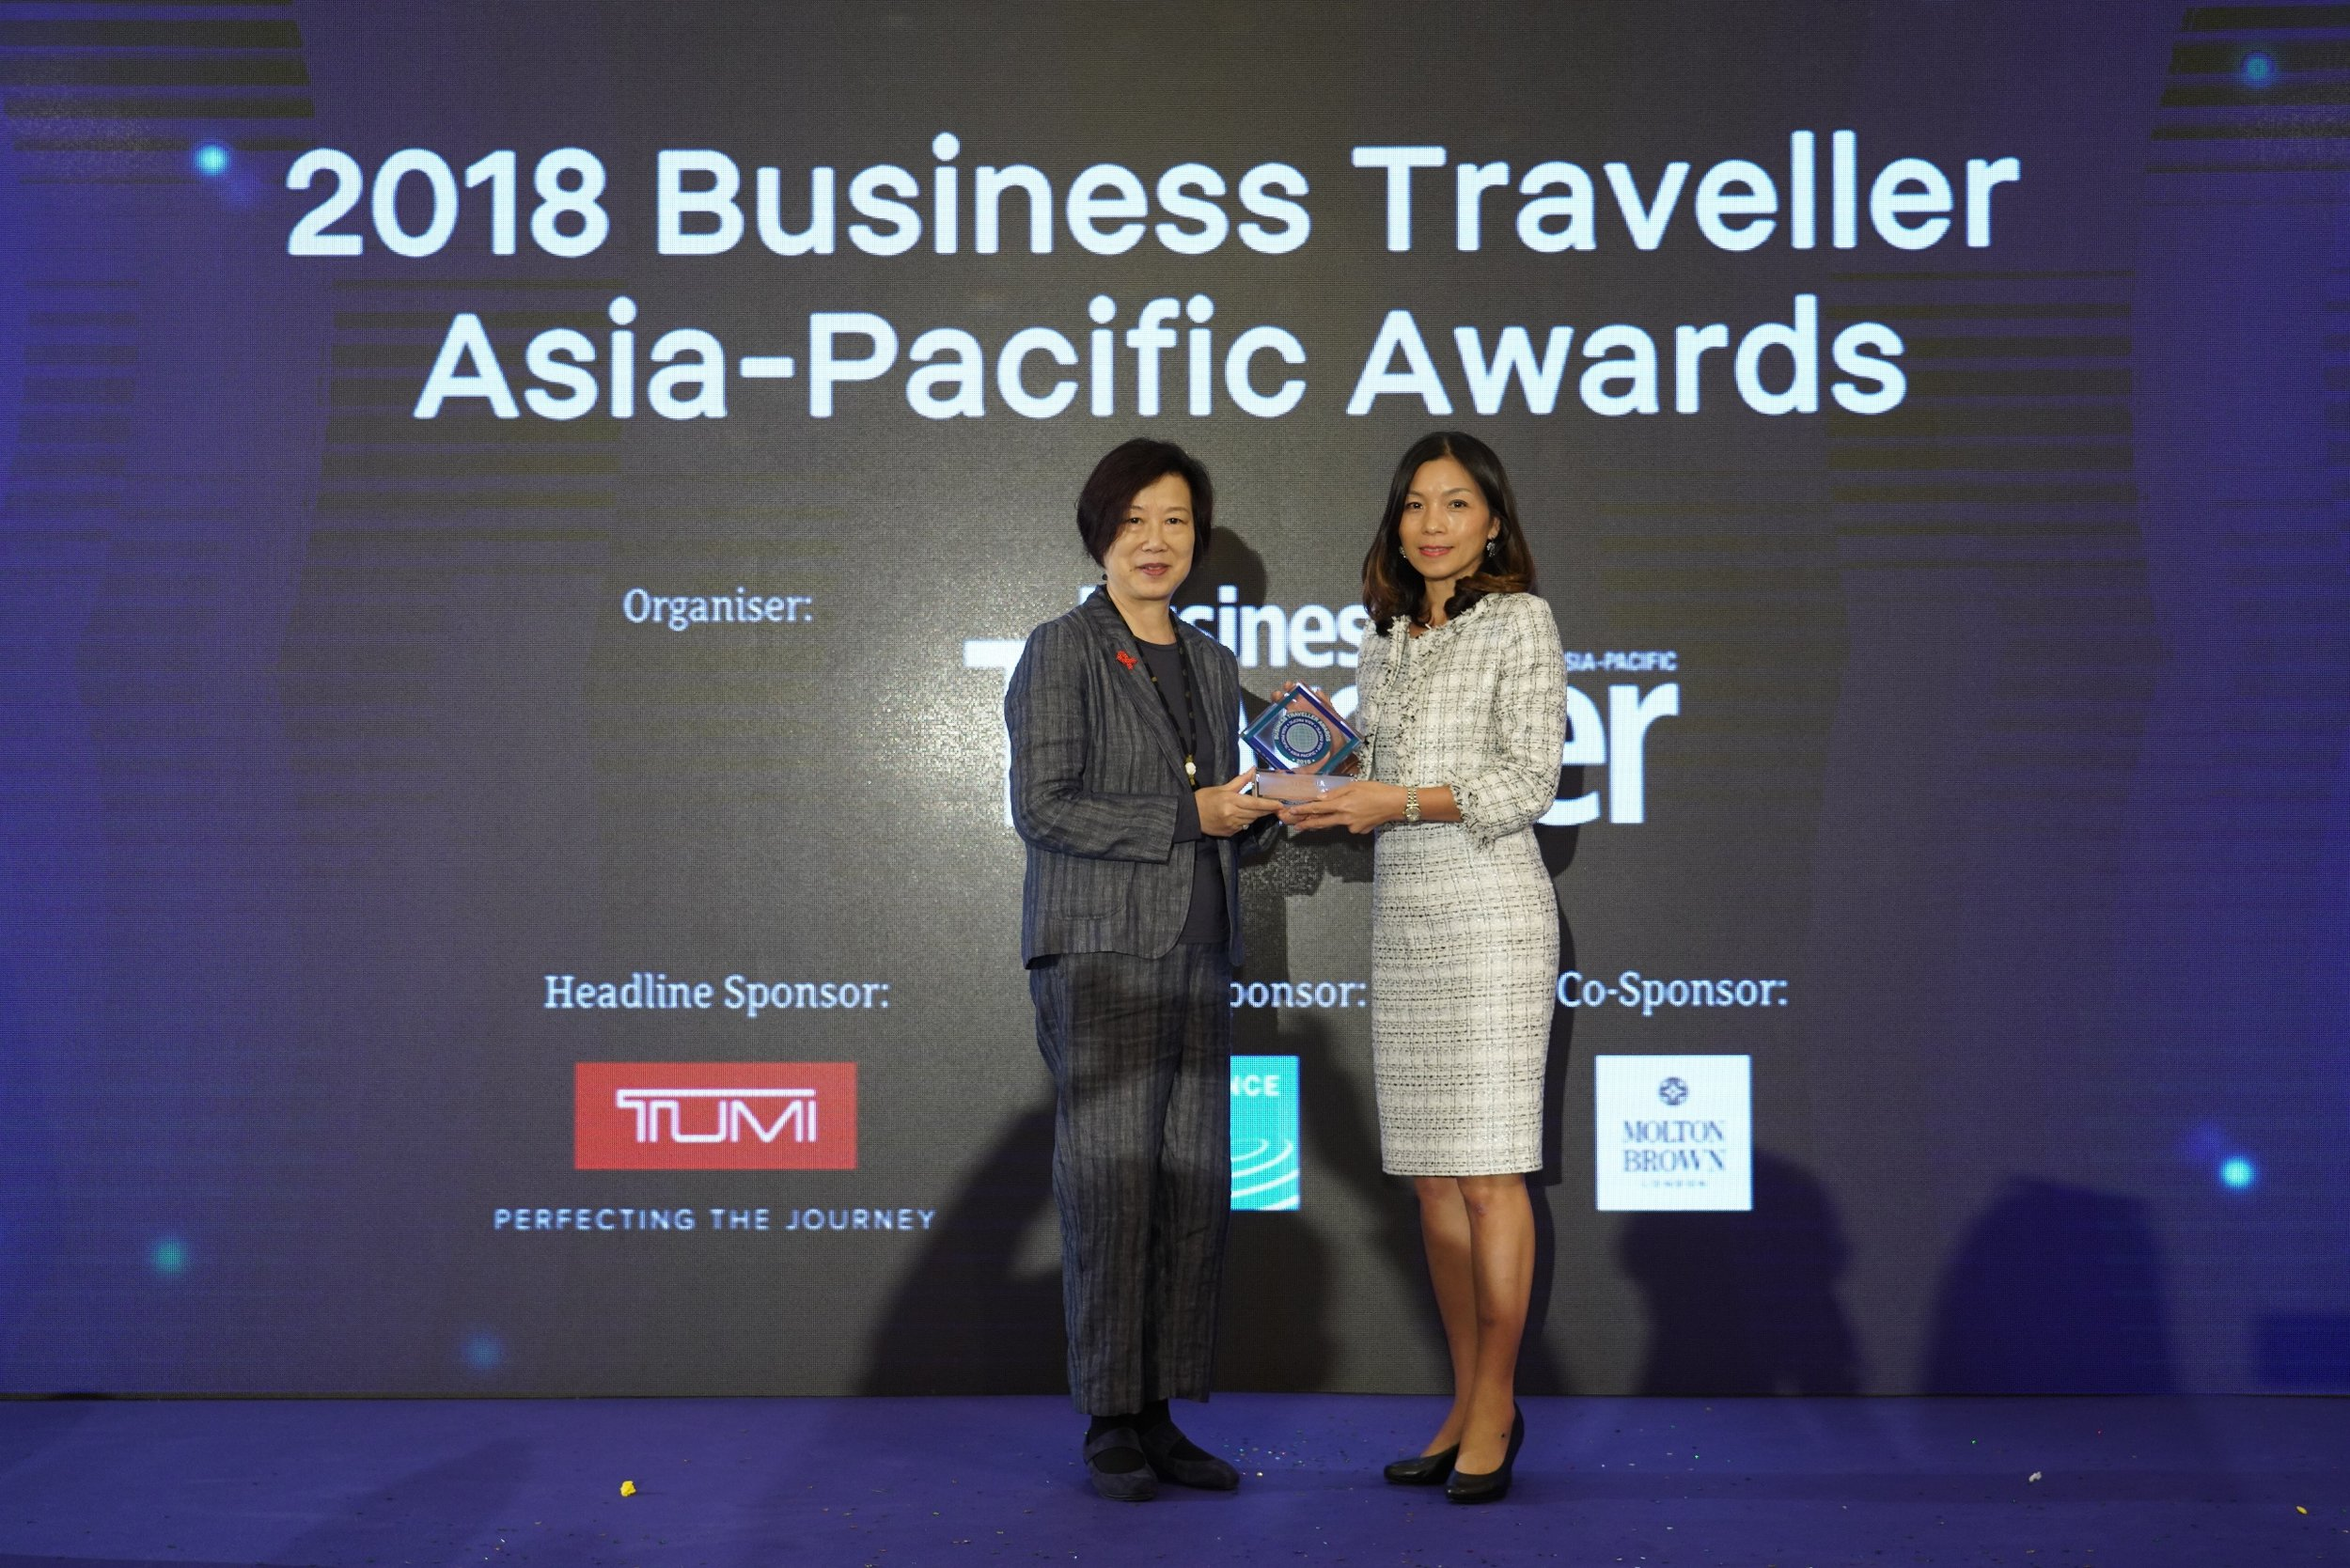 AirAsia Hong Kong and Macao CEO Celia Lao received the trophy for Best Low-cost Airline at the 2018 Business Traveller Asia-Pacific Awards held in Hong Kong.